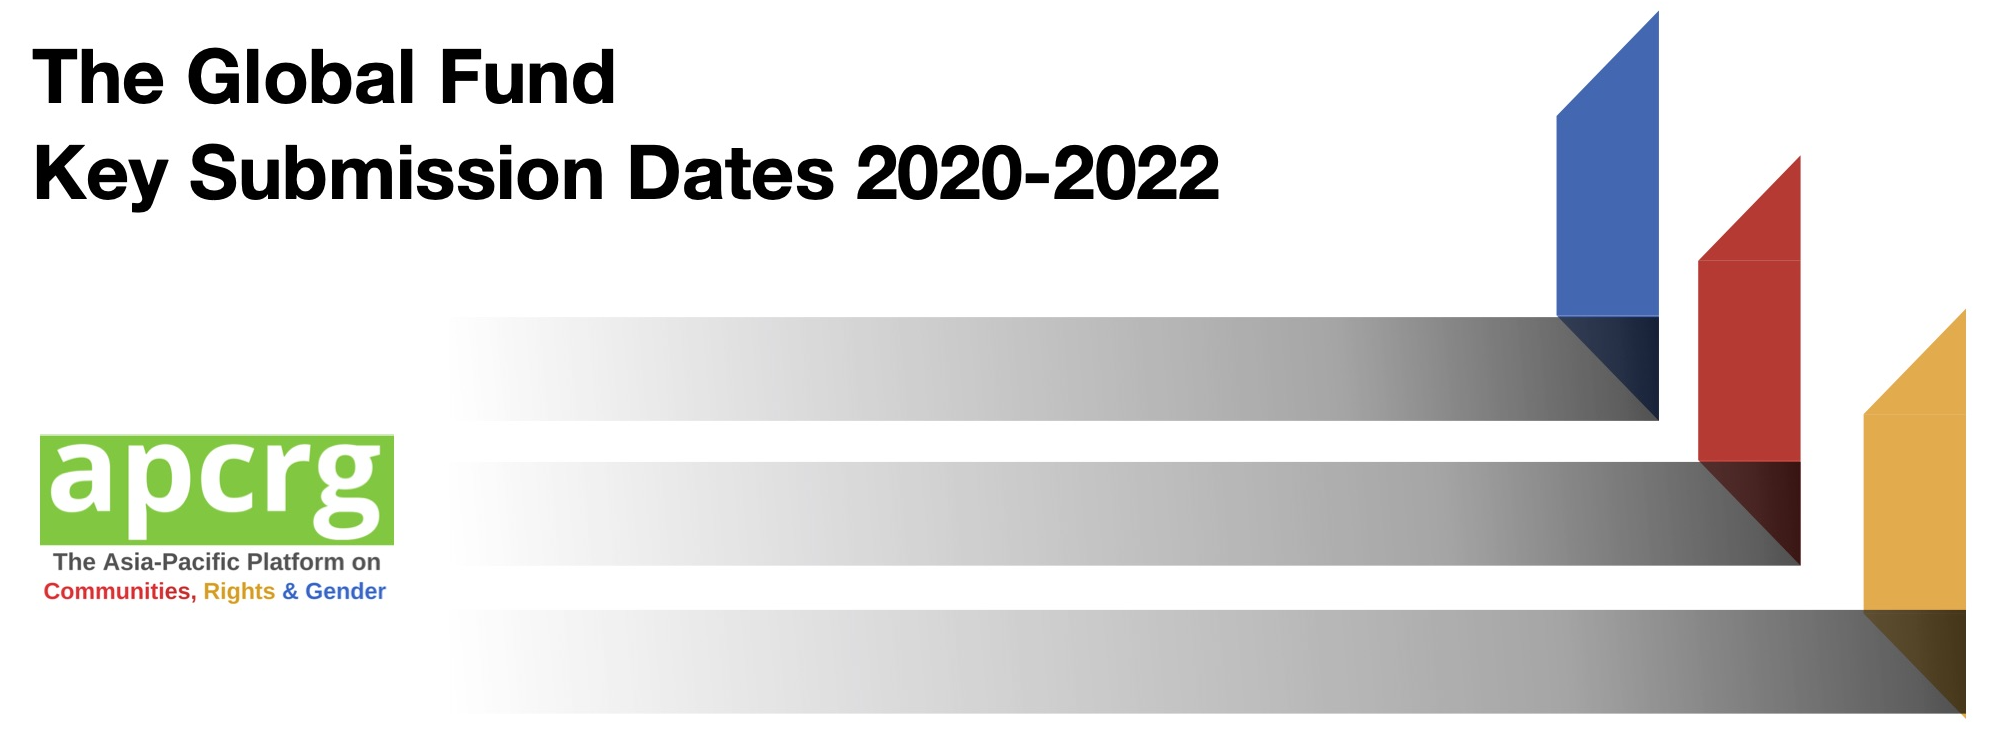 Global Fund Key Submission Dates 2020-2022